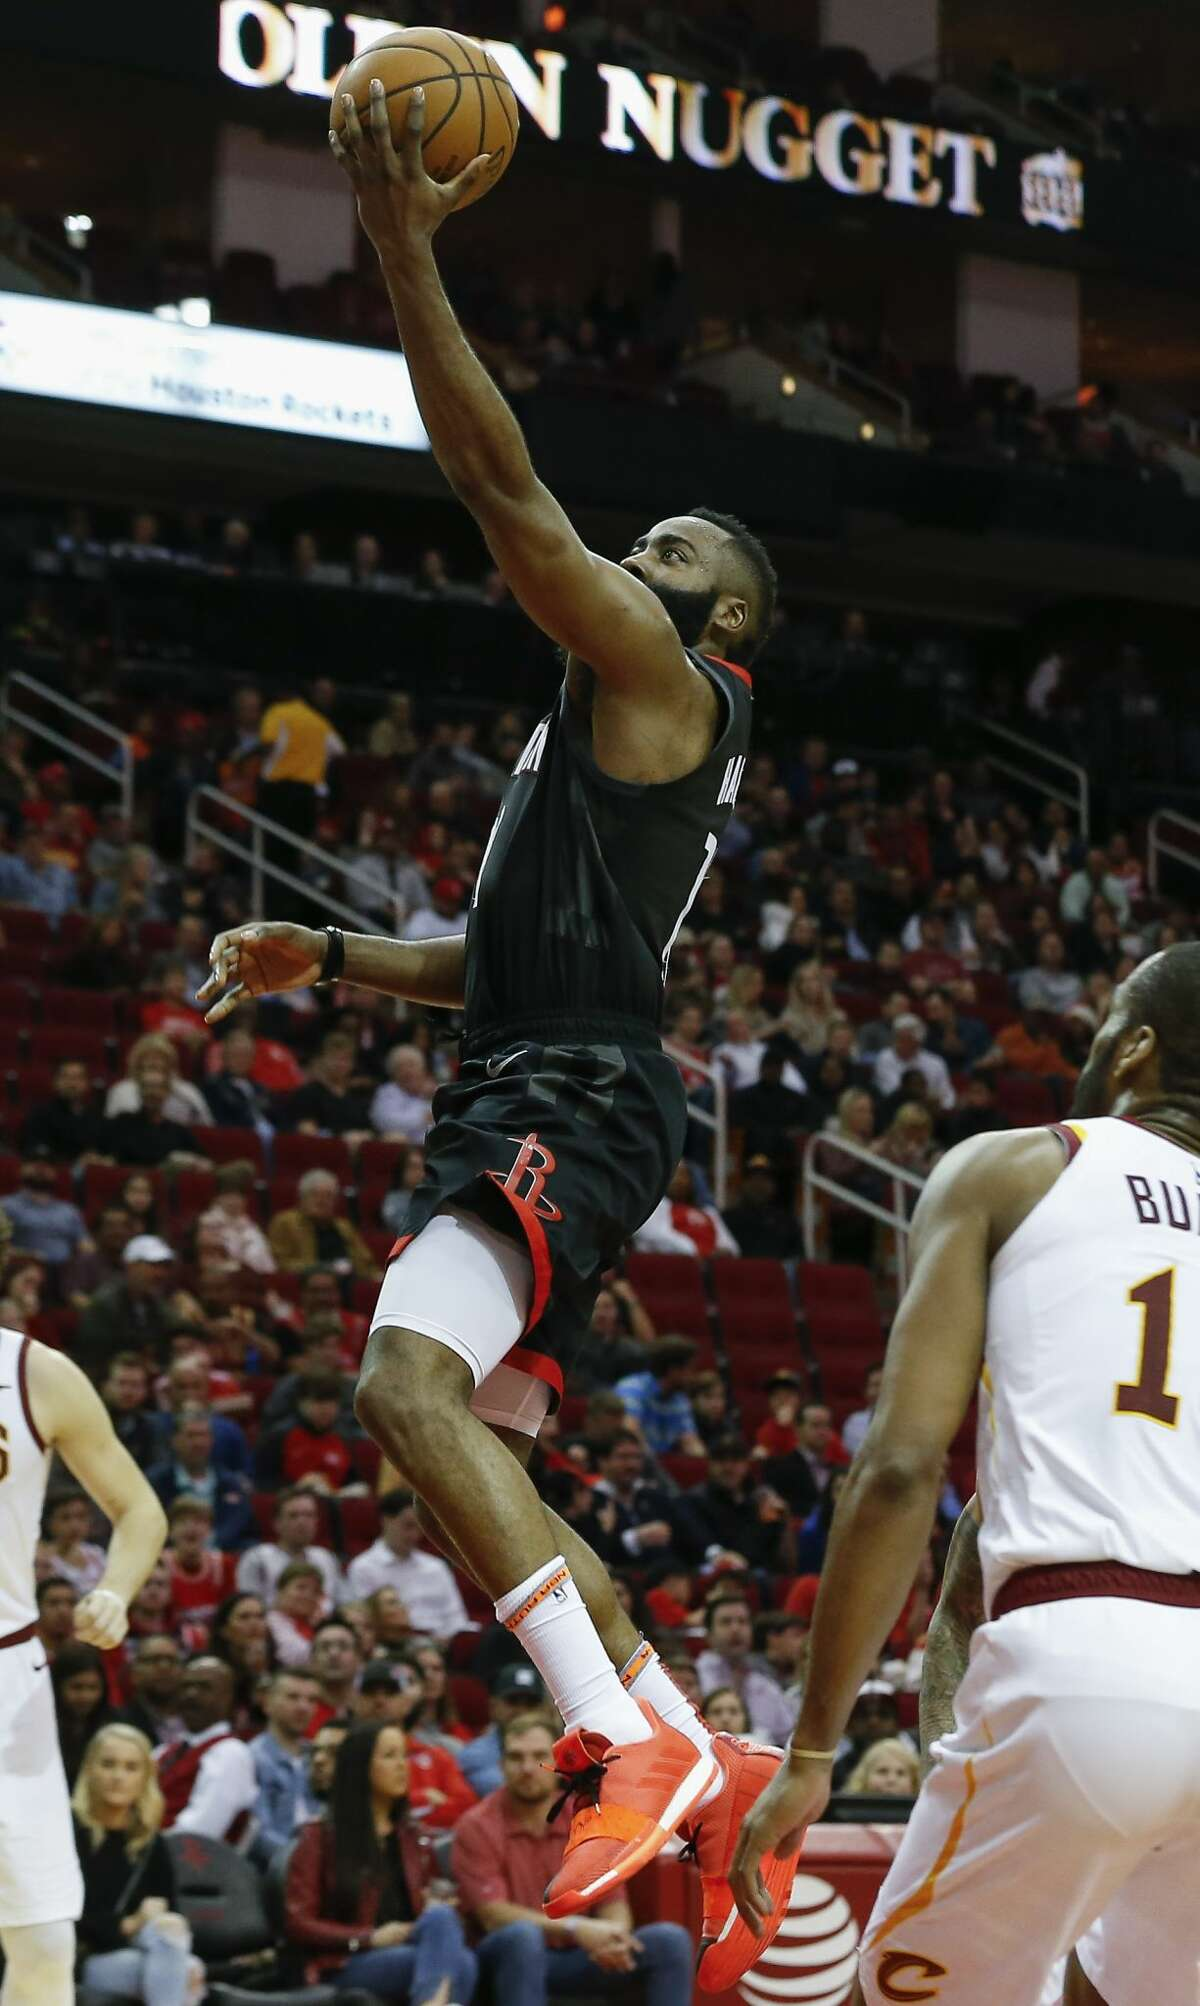 Houston Rockets guard James Harden (13) goes for a lay up during the third quarter of the NBA game against the Cleveland Cavaliers at Toyota Center on Friday, Jan. 11, 2019, in Houston. The Houston Rockets defeated the Cleveland Cavaliers 141-113.